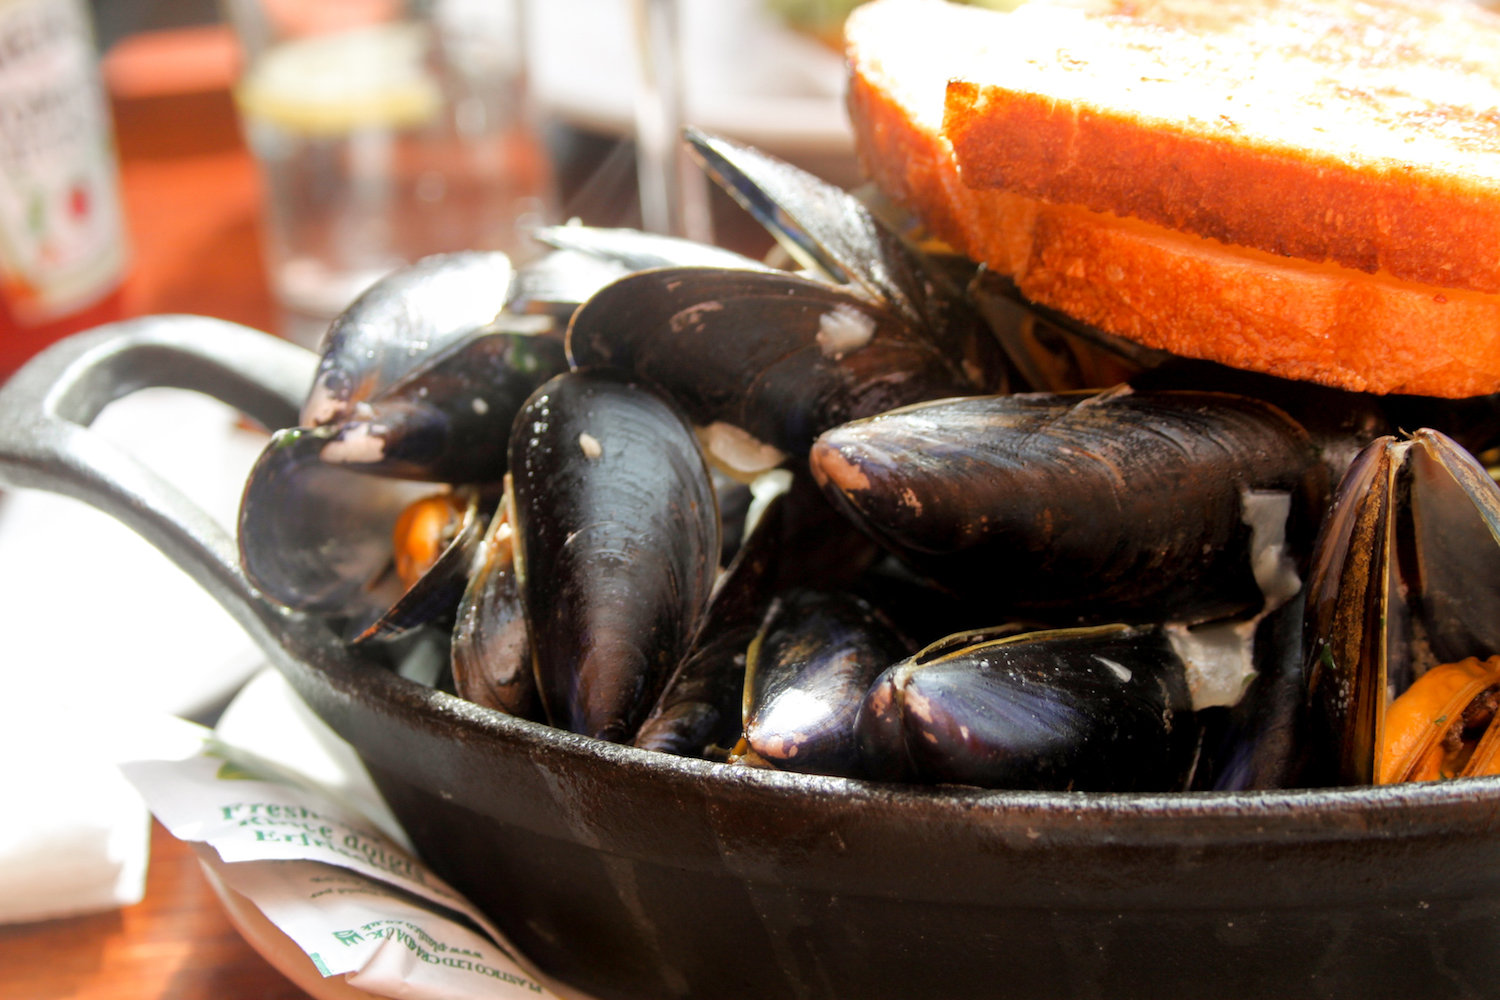 Mussels in white wine and garlic at The Oar House in Howth, Ireland (Eat Me. Drink Me.)